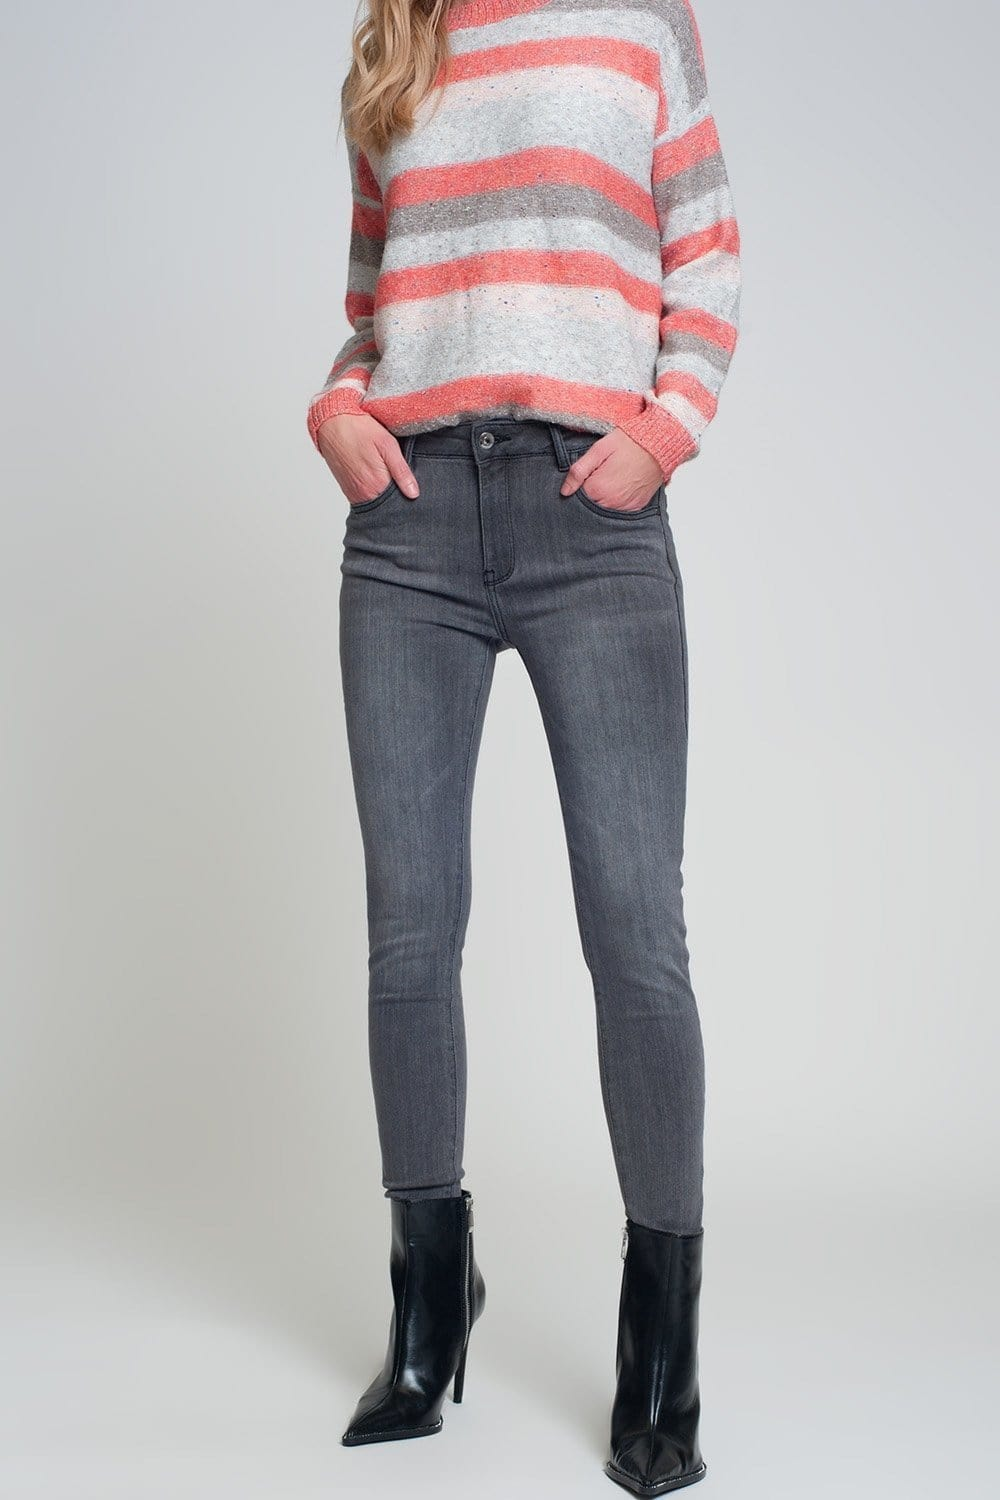 Q2 Skinny fit jeans with side slit in gray